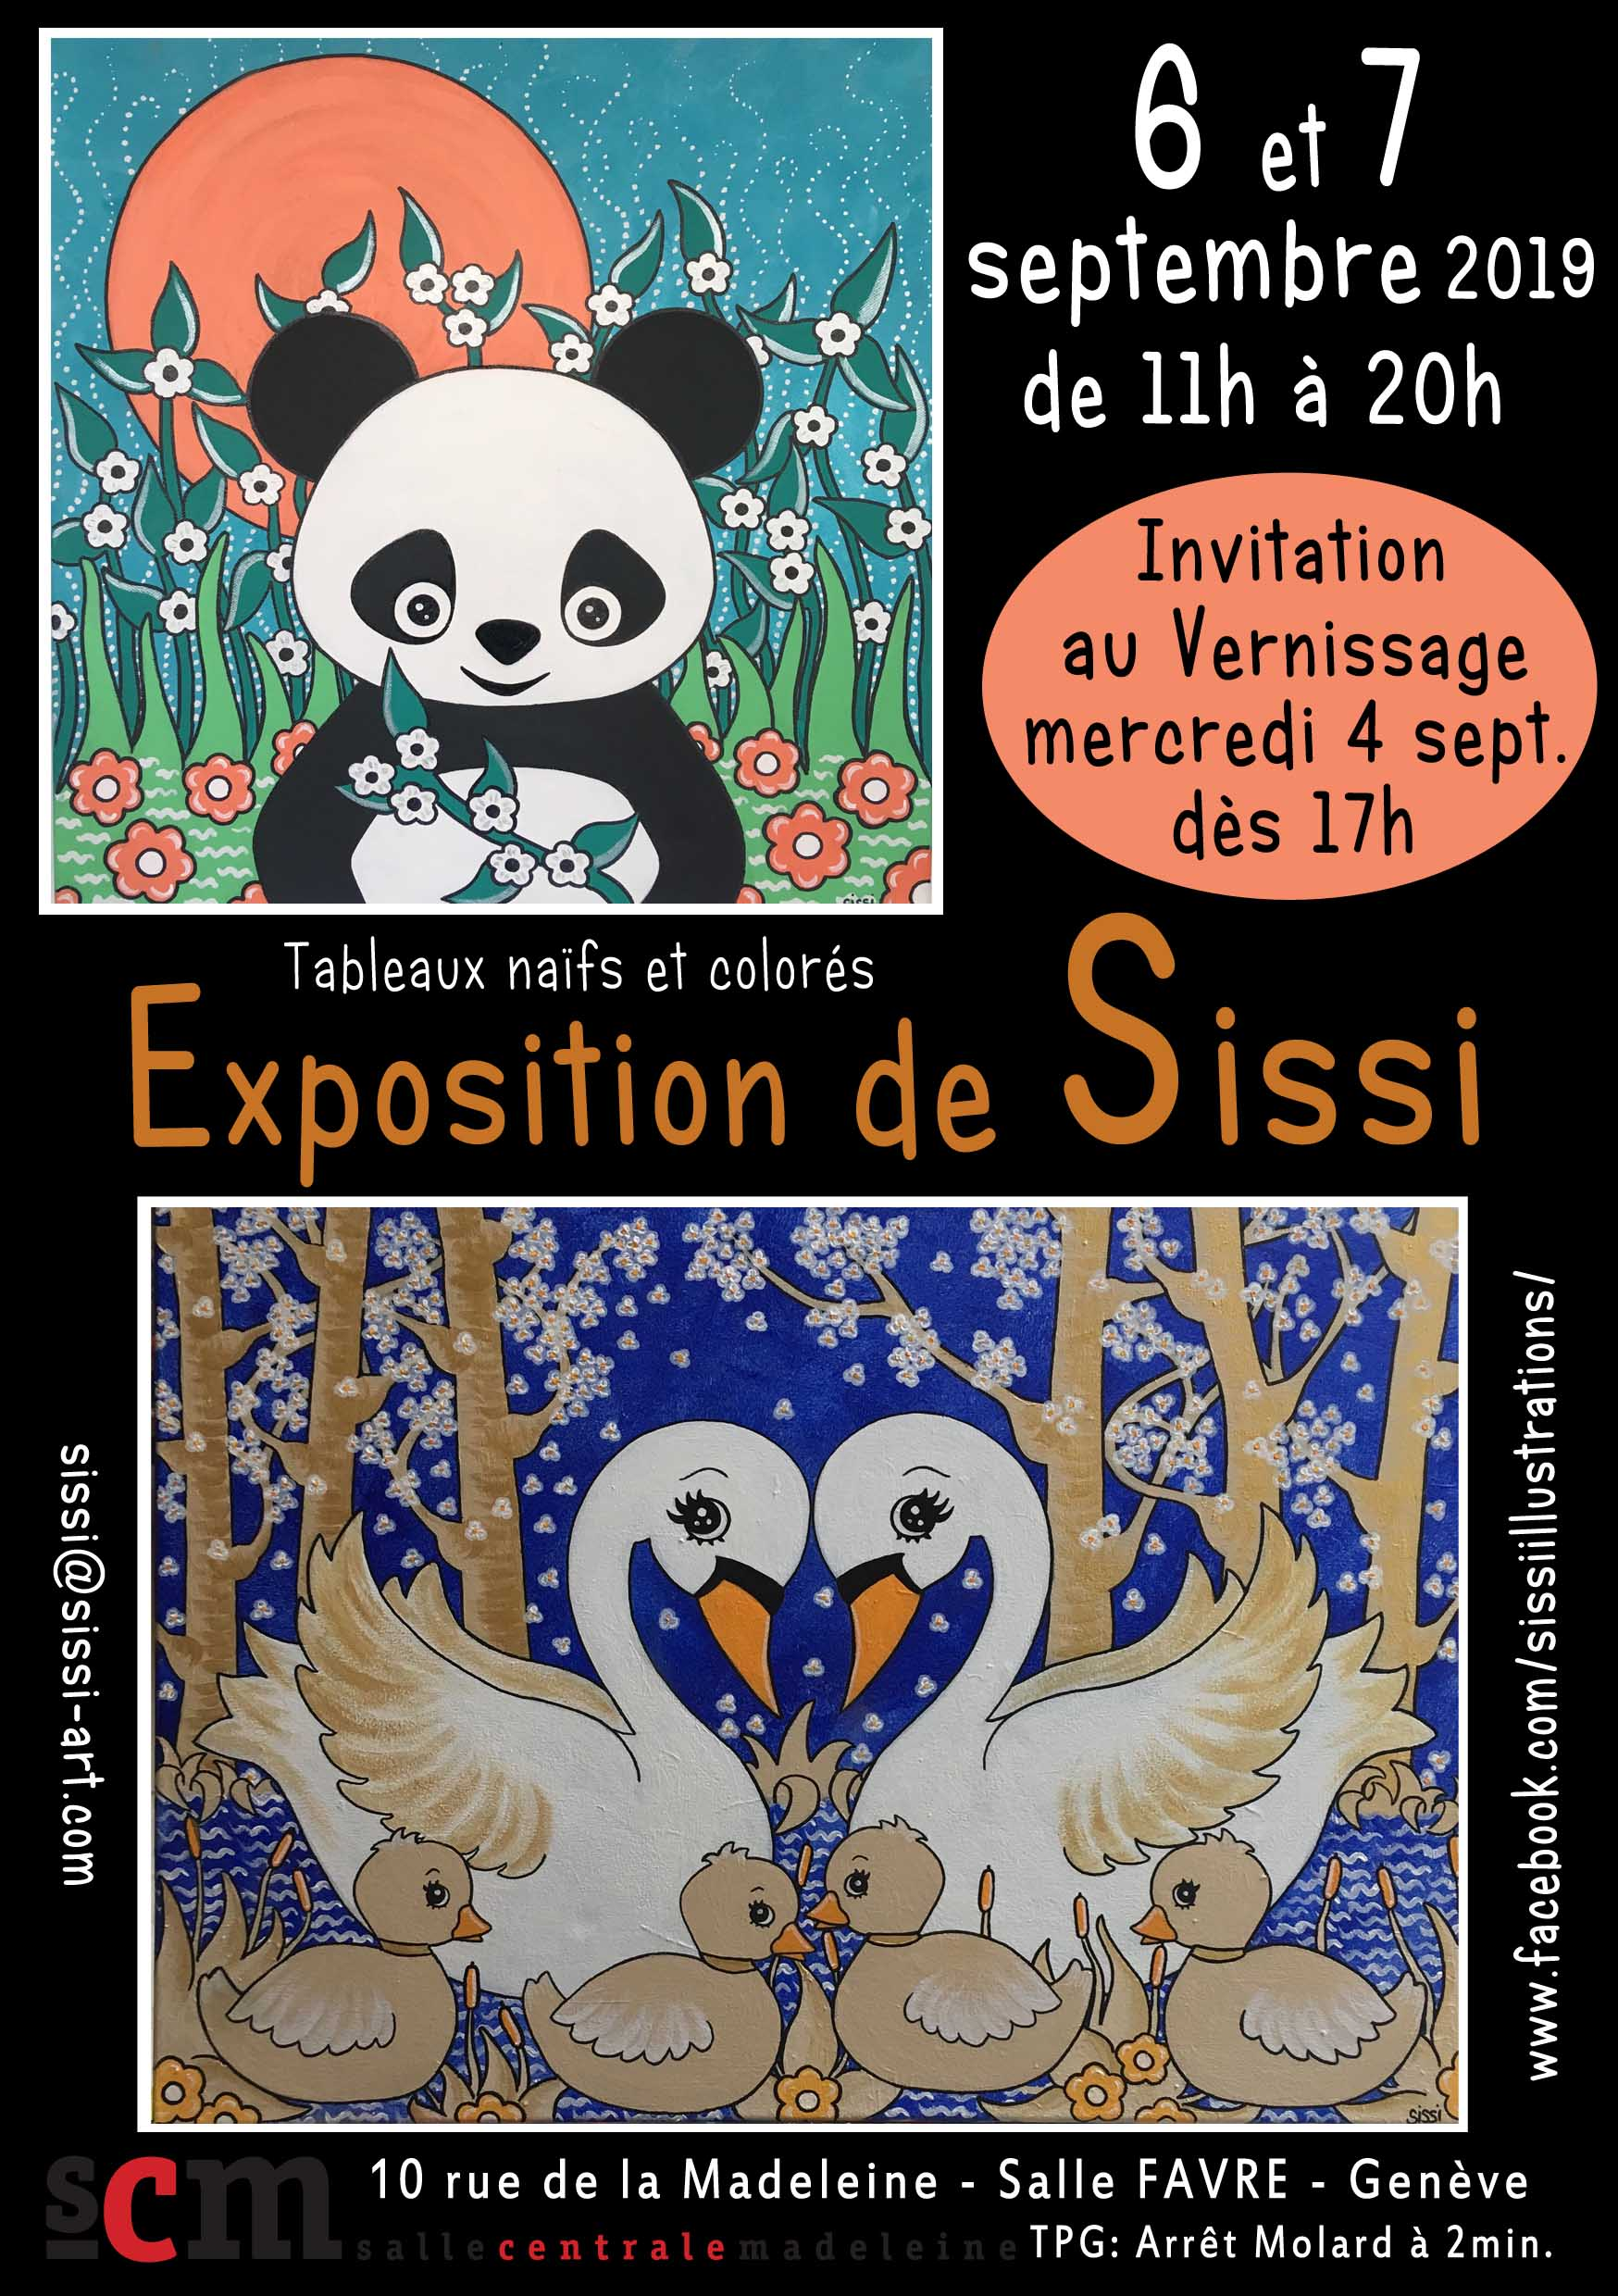 EXPO SISSI FLY